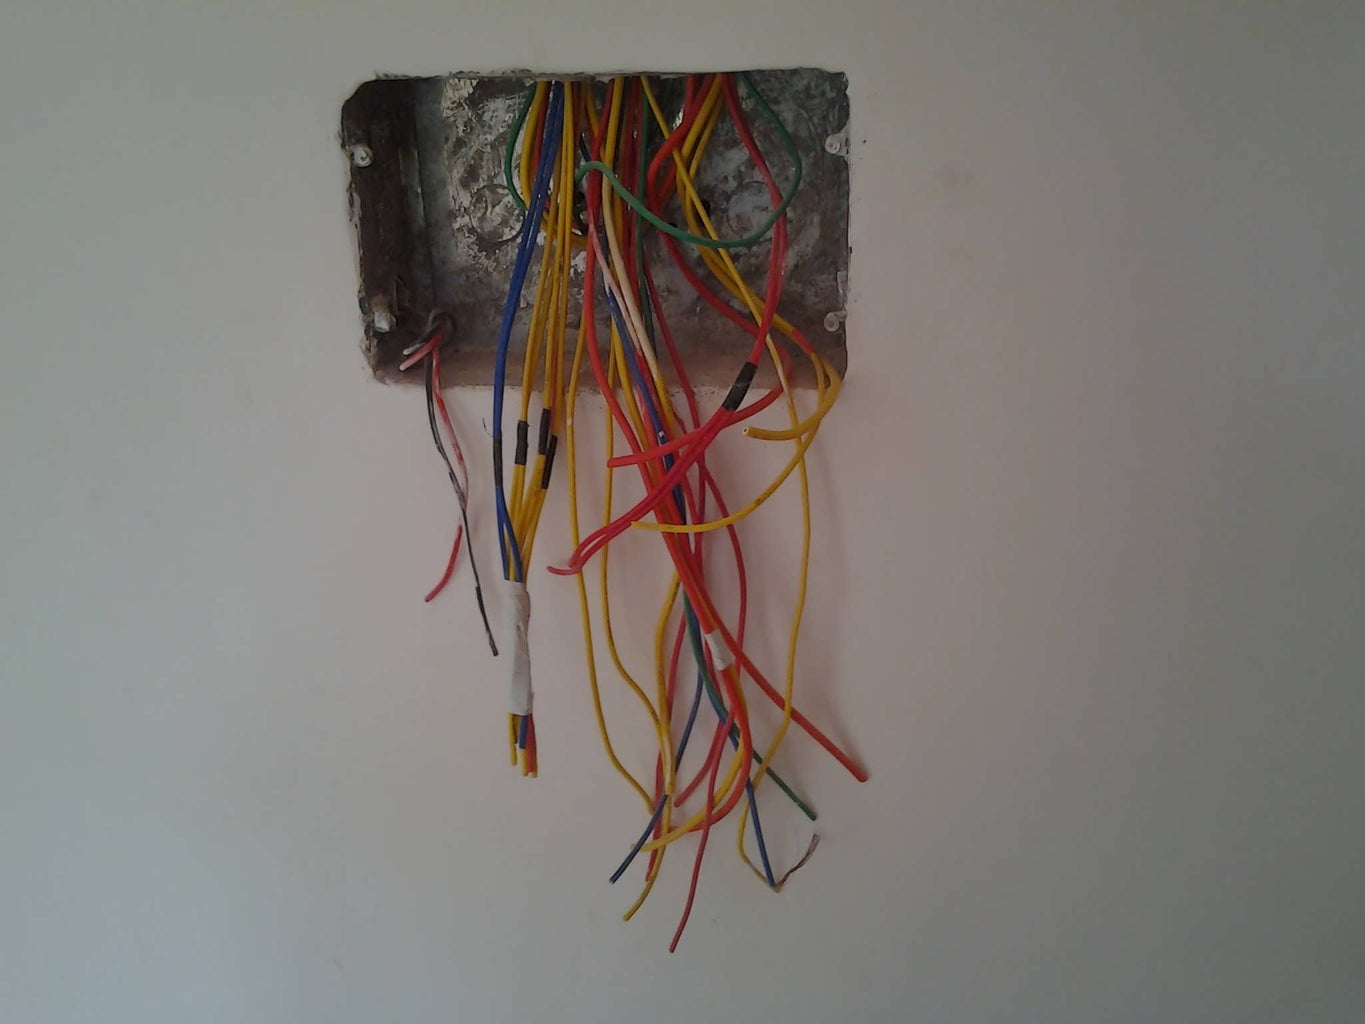 Initial Wiring and Testing